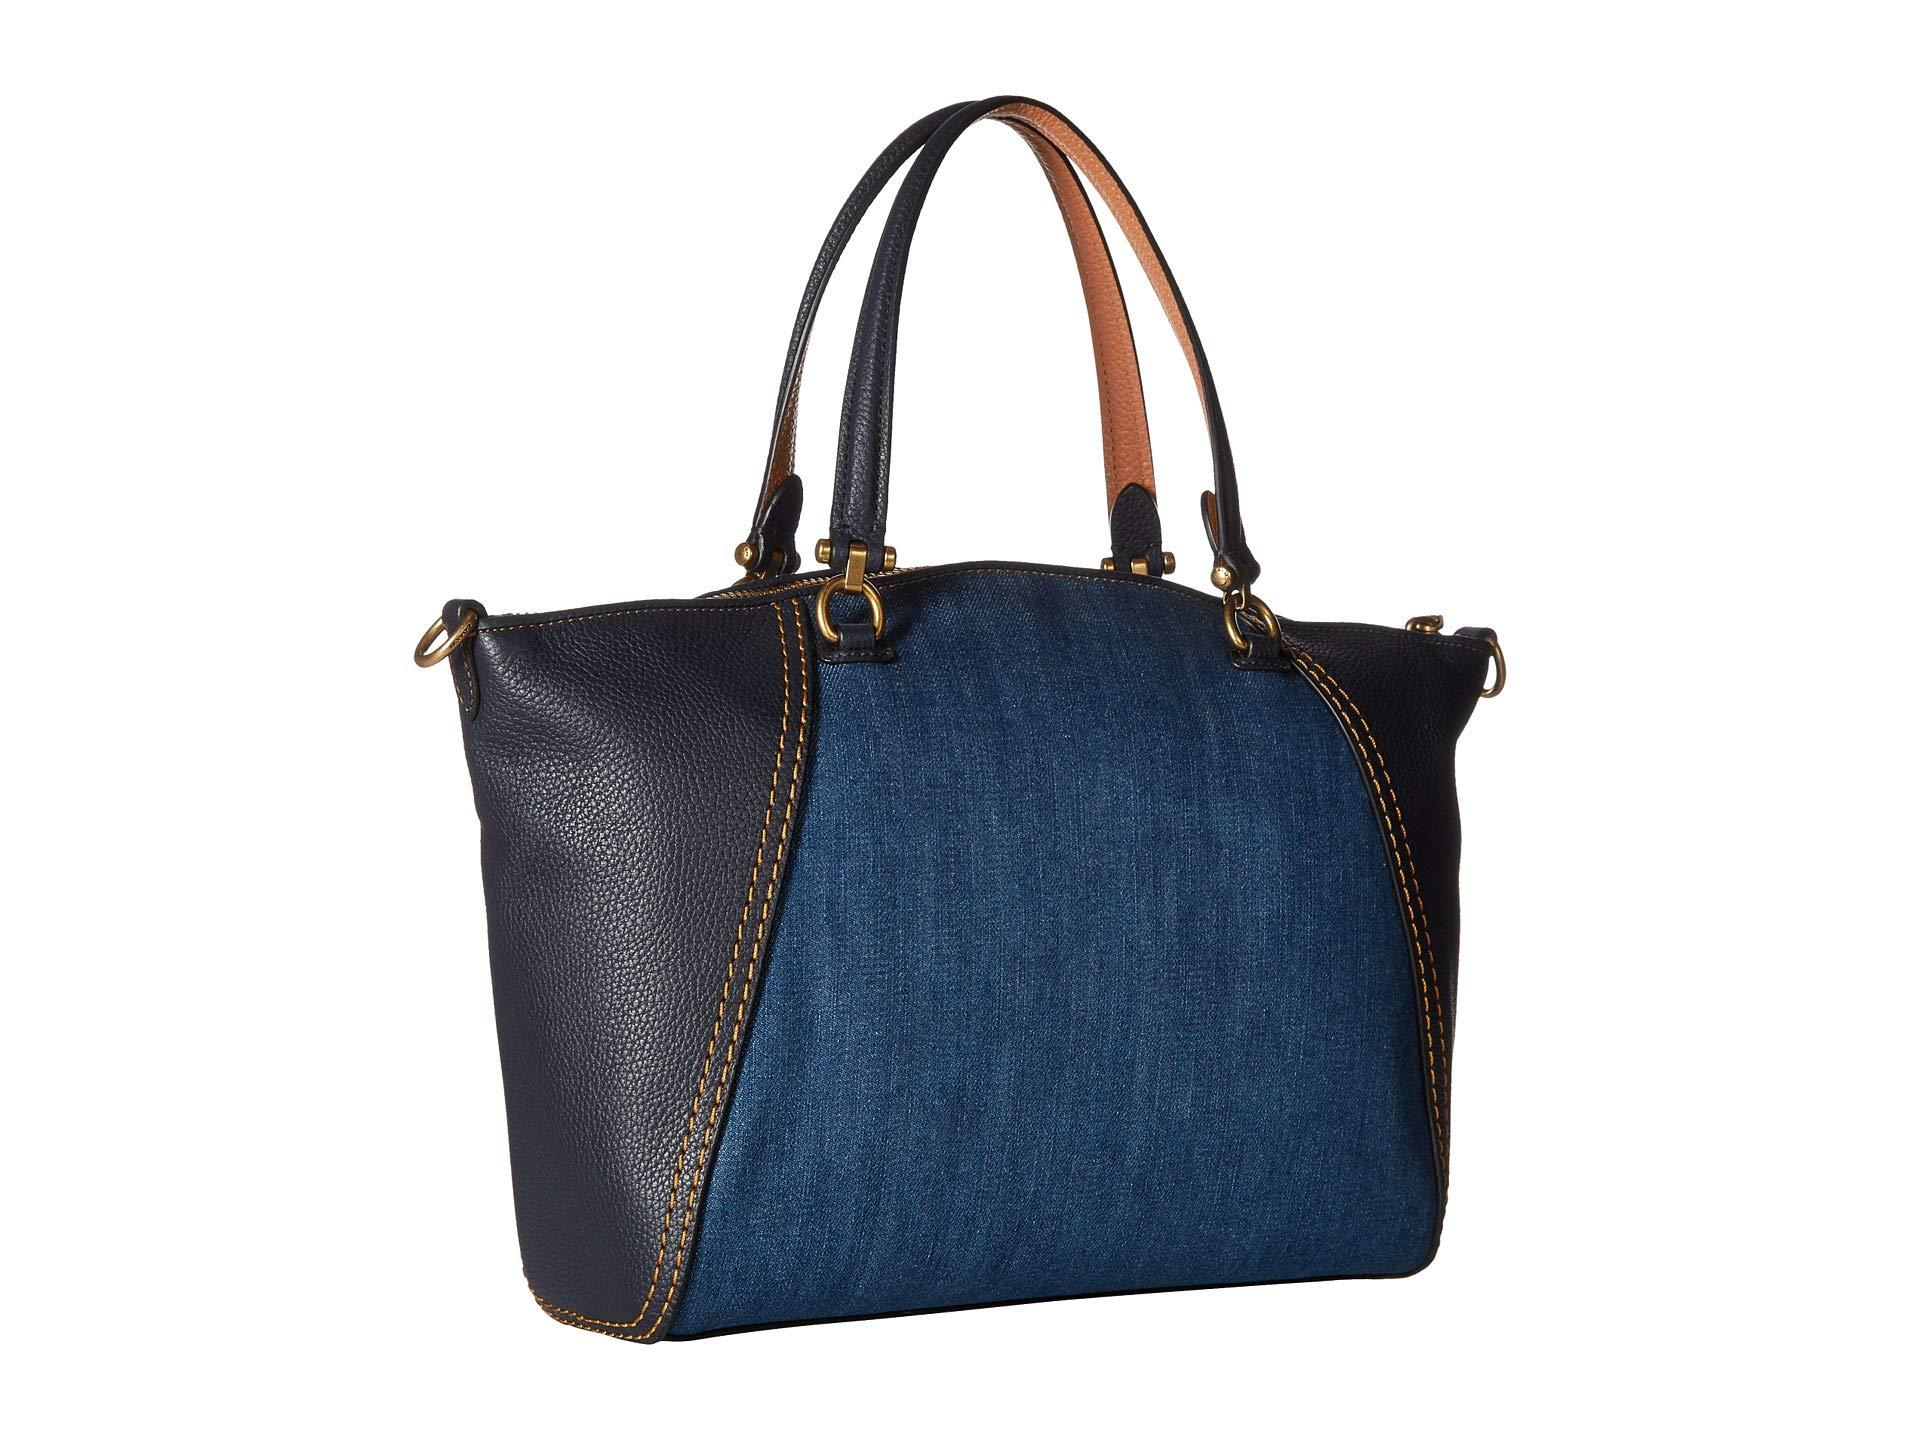 24a0182cff1 Denim And Leather Handbags